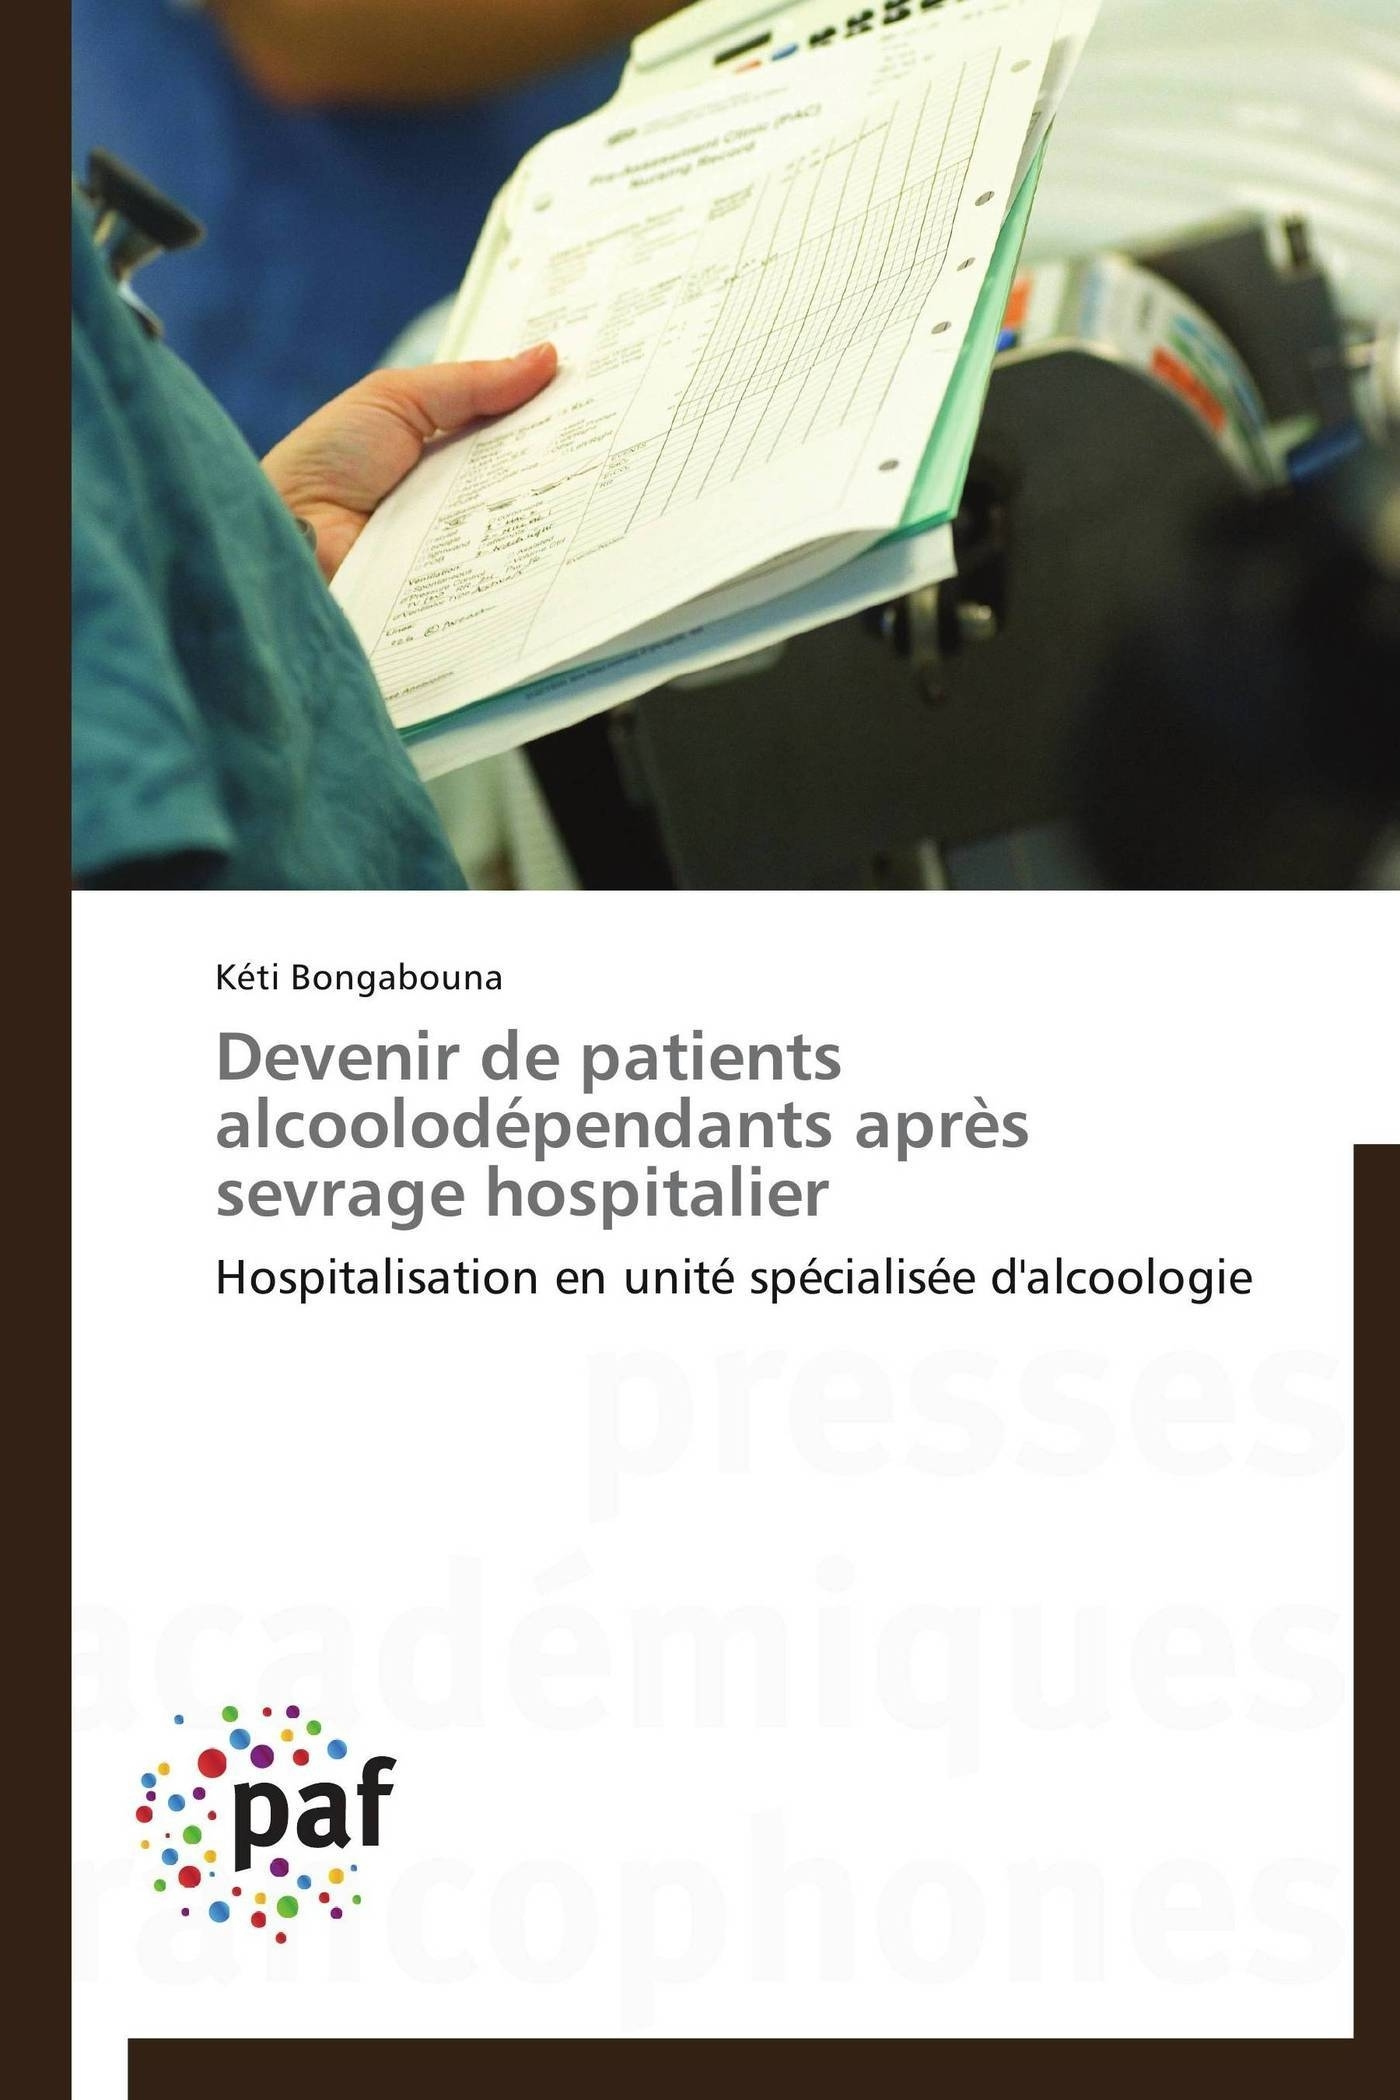 DEVENIR DE PATIENTS ALCOOLODEPENDANTS APRES SEVRAGE HOSPITALIER